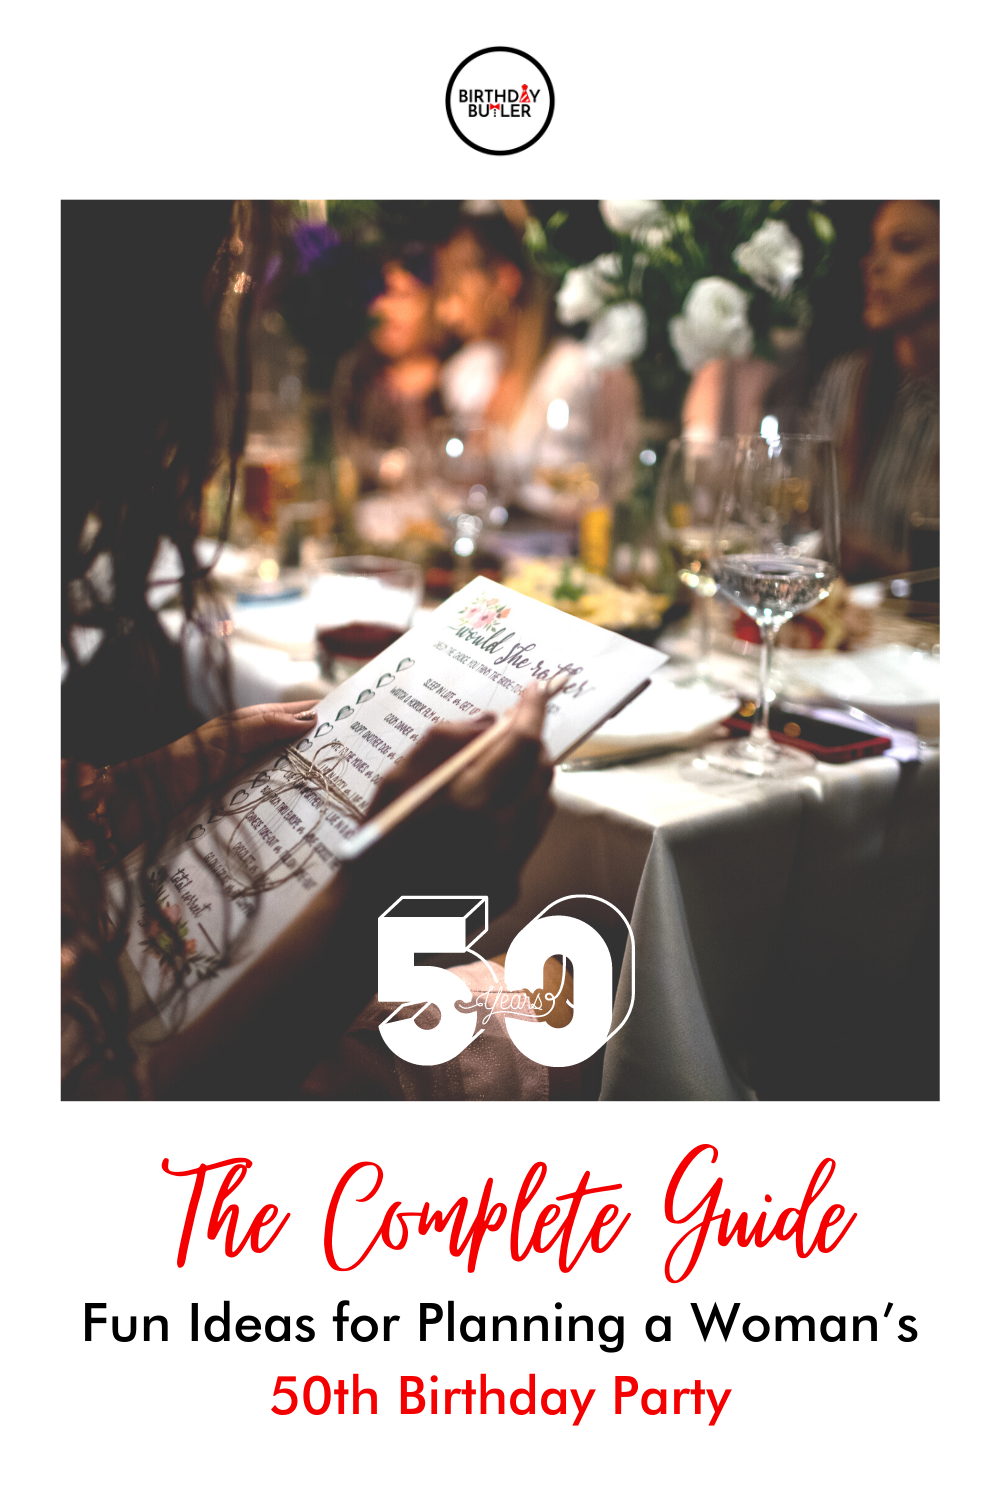 The Complete Guide: Fun Ideas for Planning a Woman's 50th Birthday Party